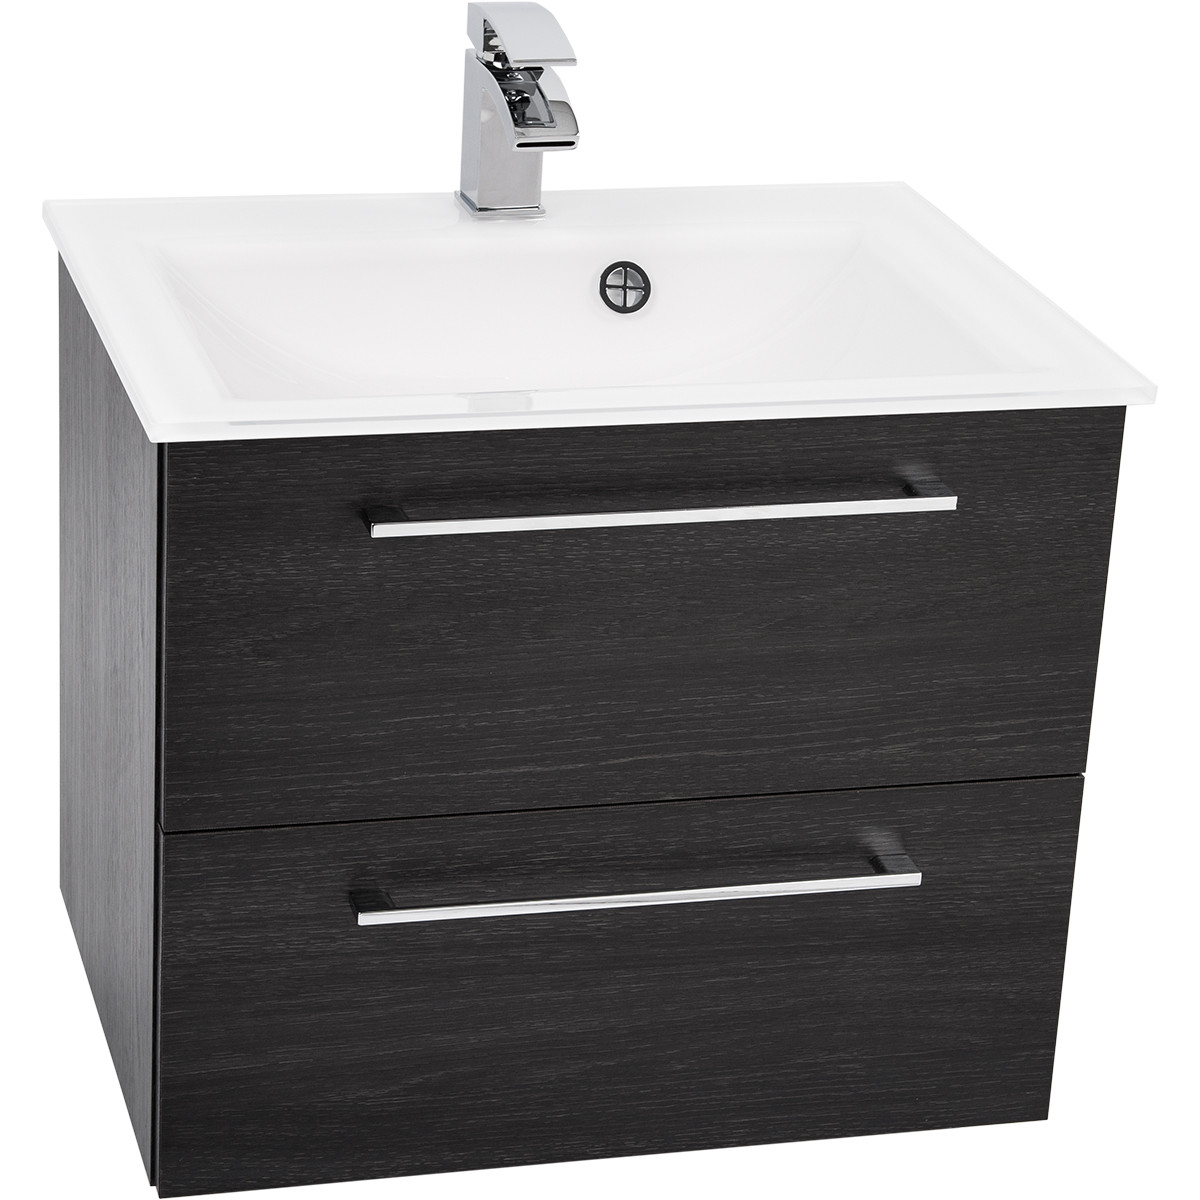 Venice White 600 Napoli Black Oak 2 Drawer Wall Mounted Unit & Basin